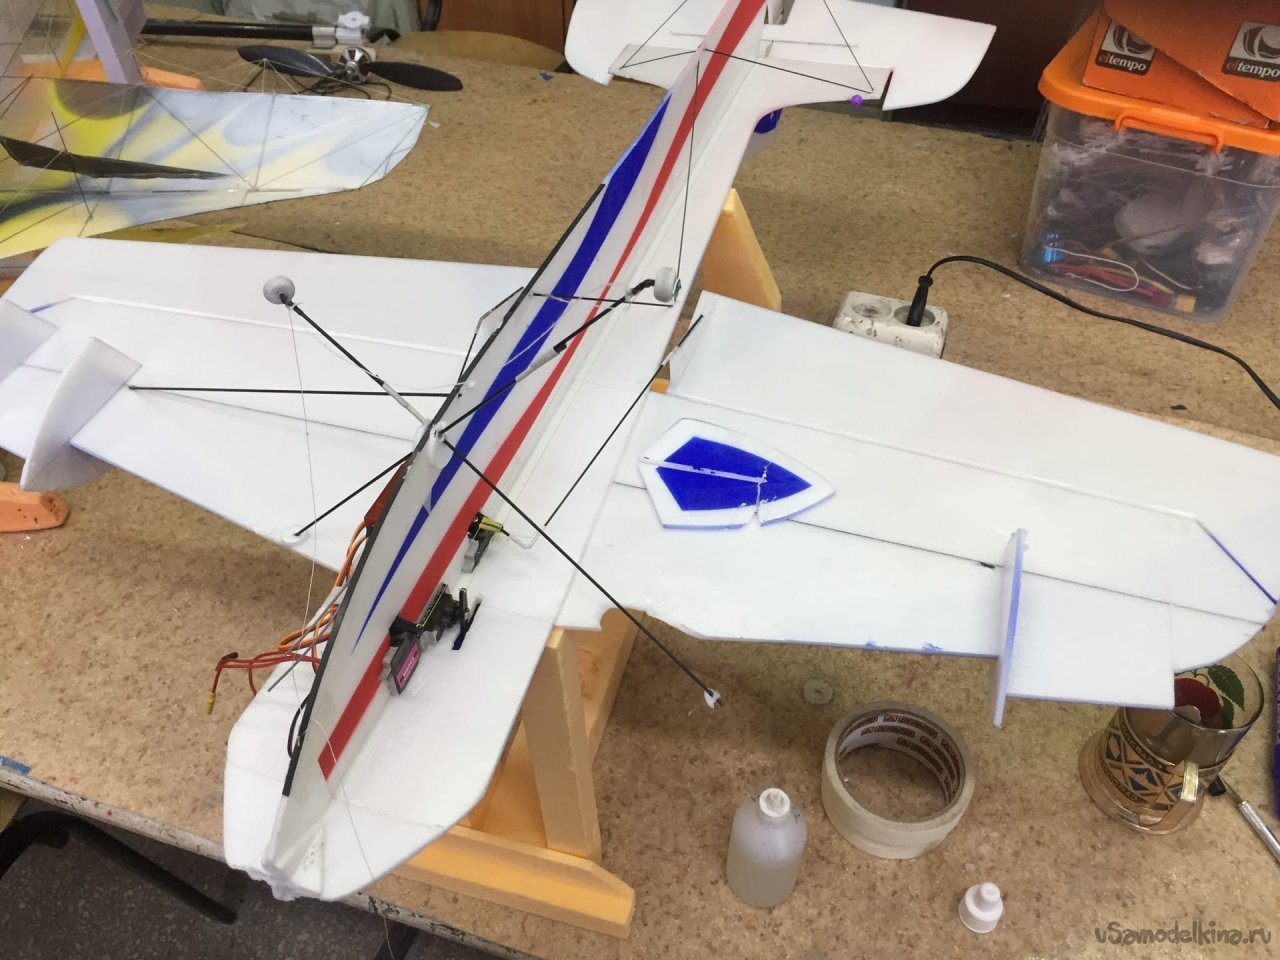 Repair of the F3P class radio-controlled aircraft